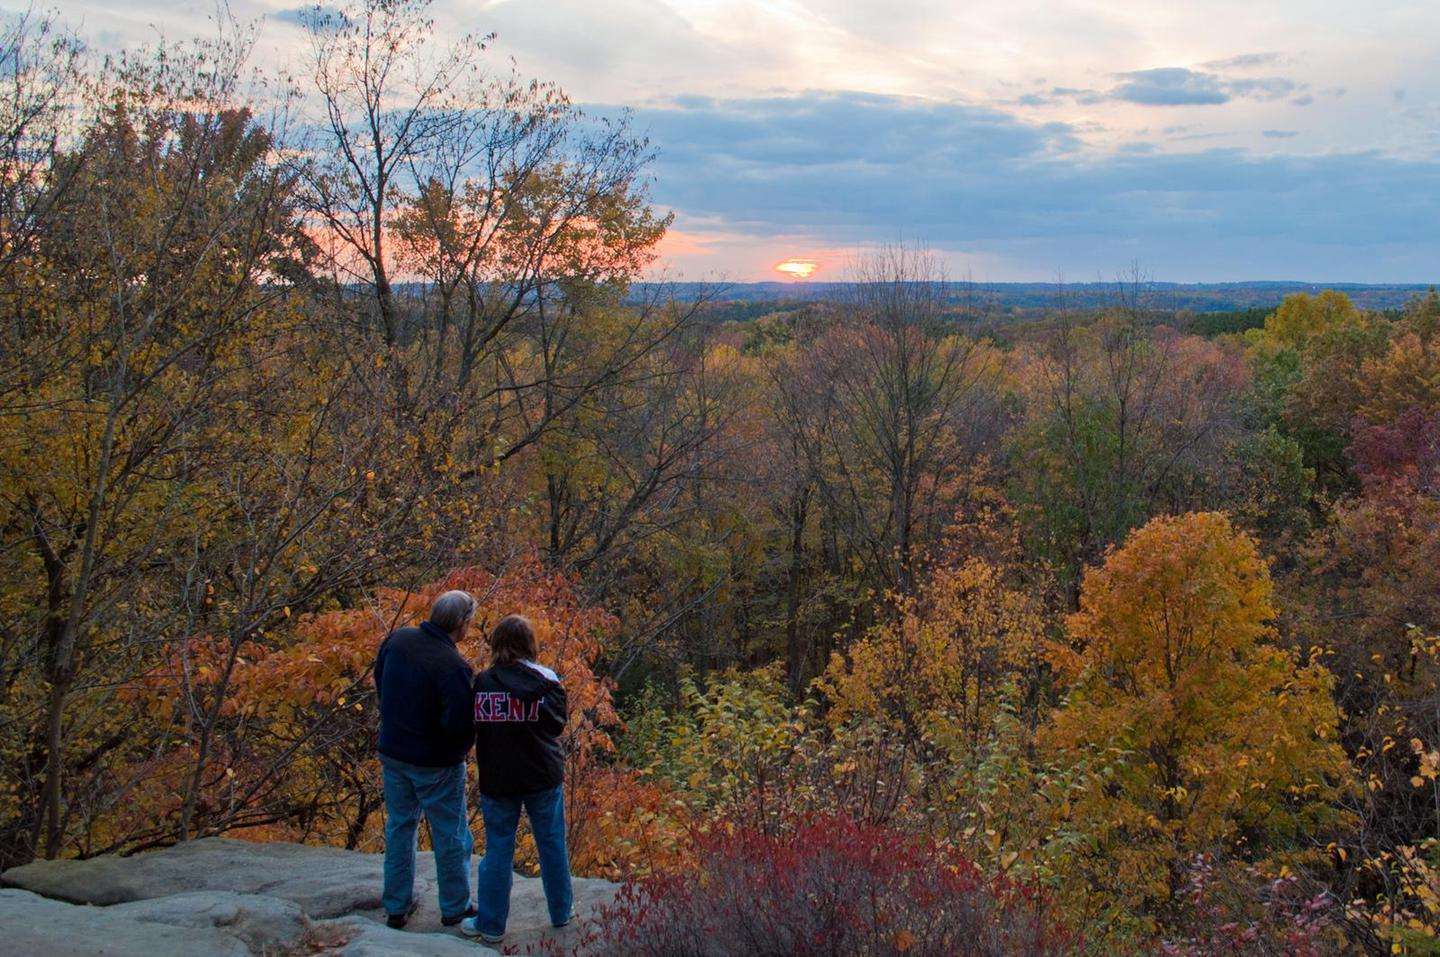 The Ledges Overlook in FallVisitors taking in the view at the Ledges Overlook in fall.